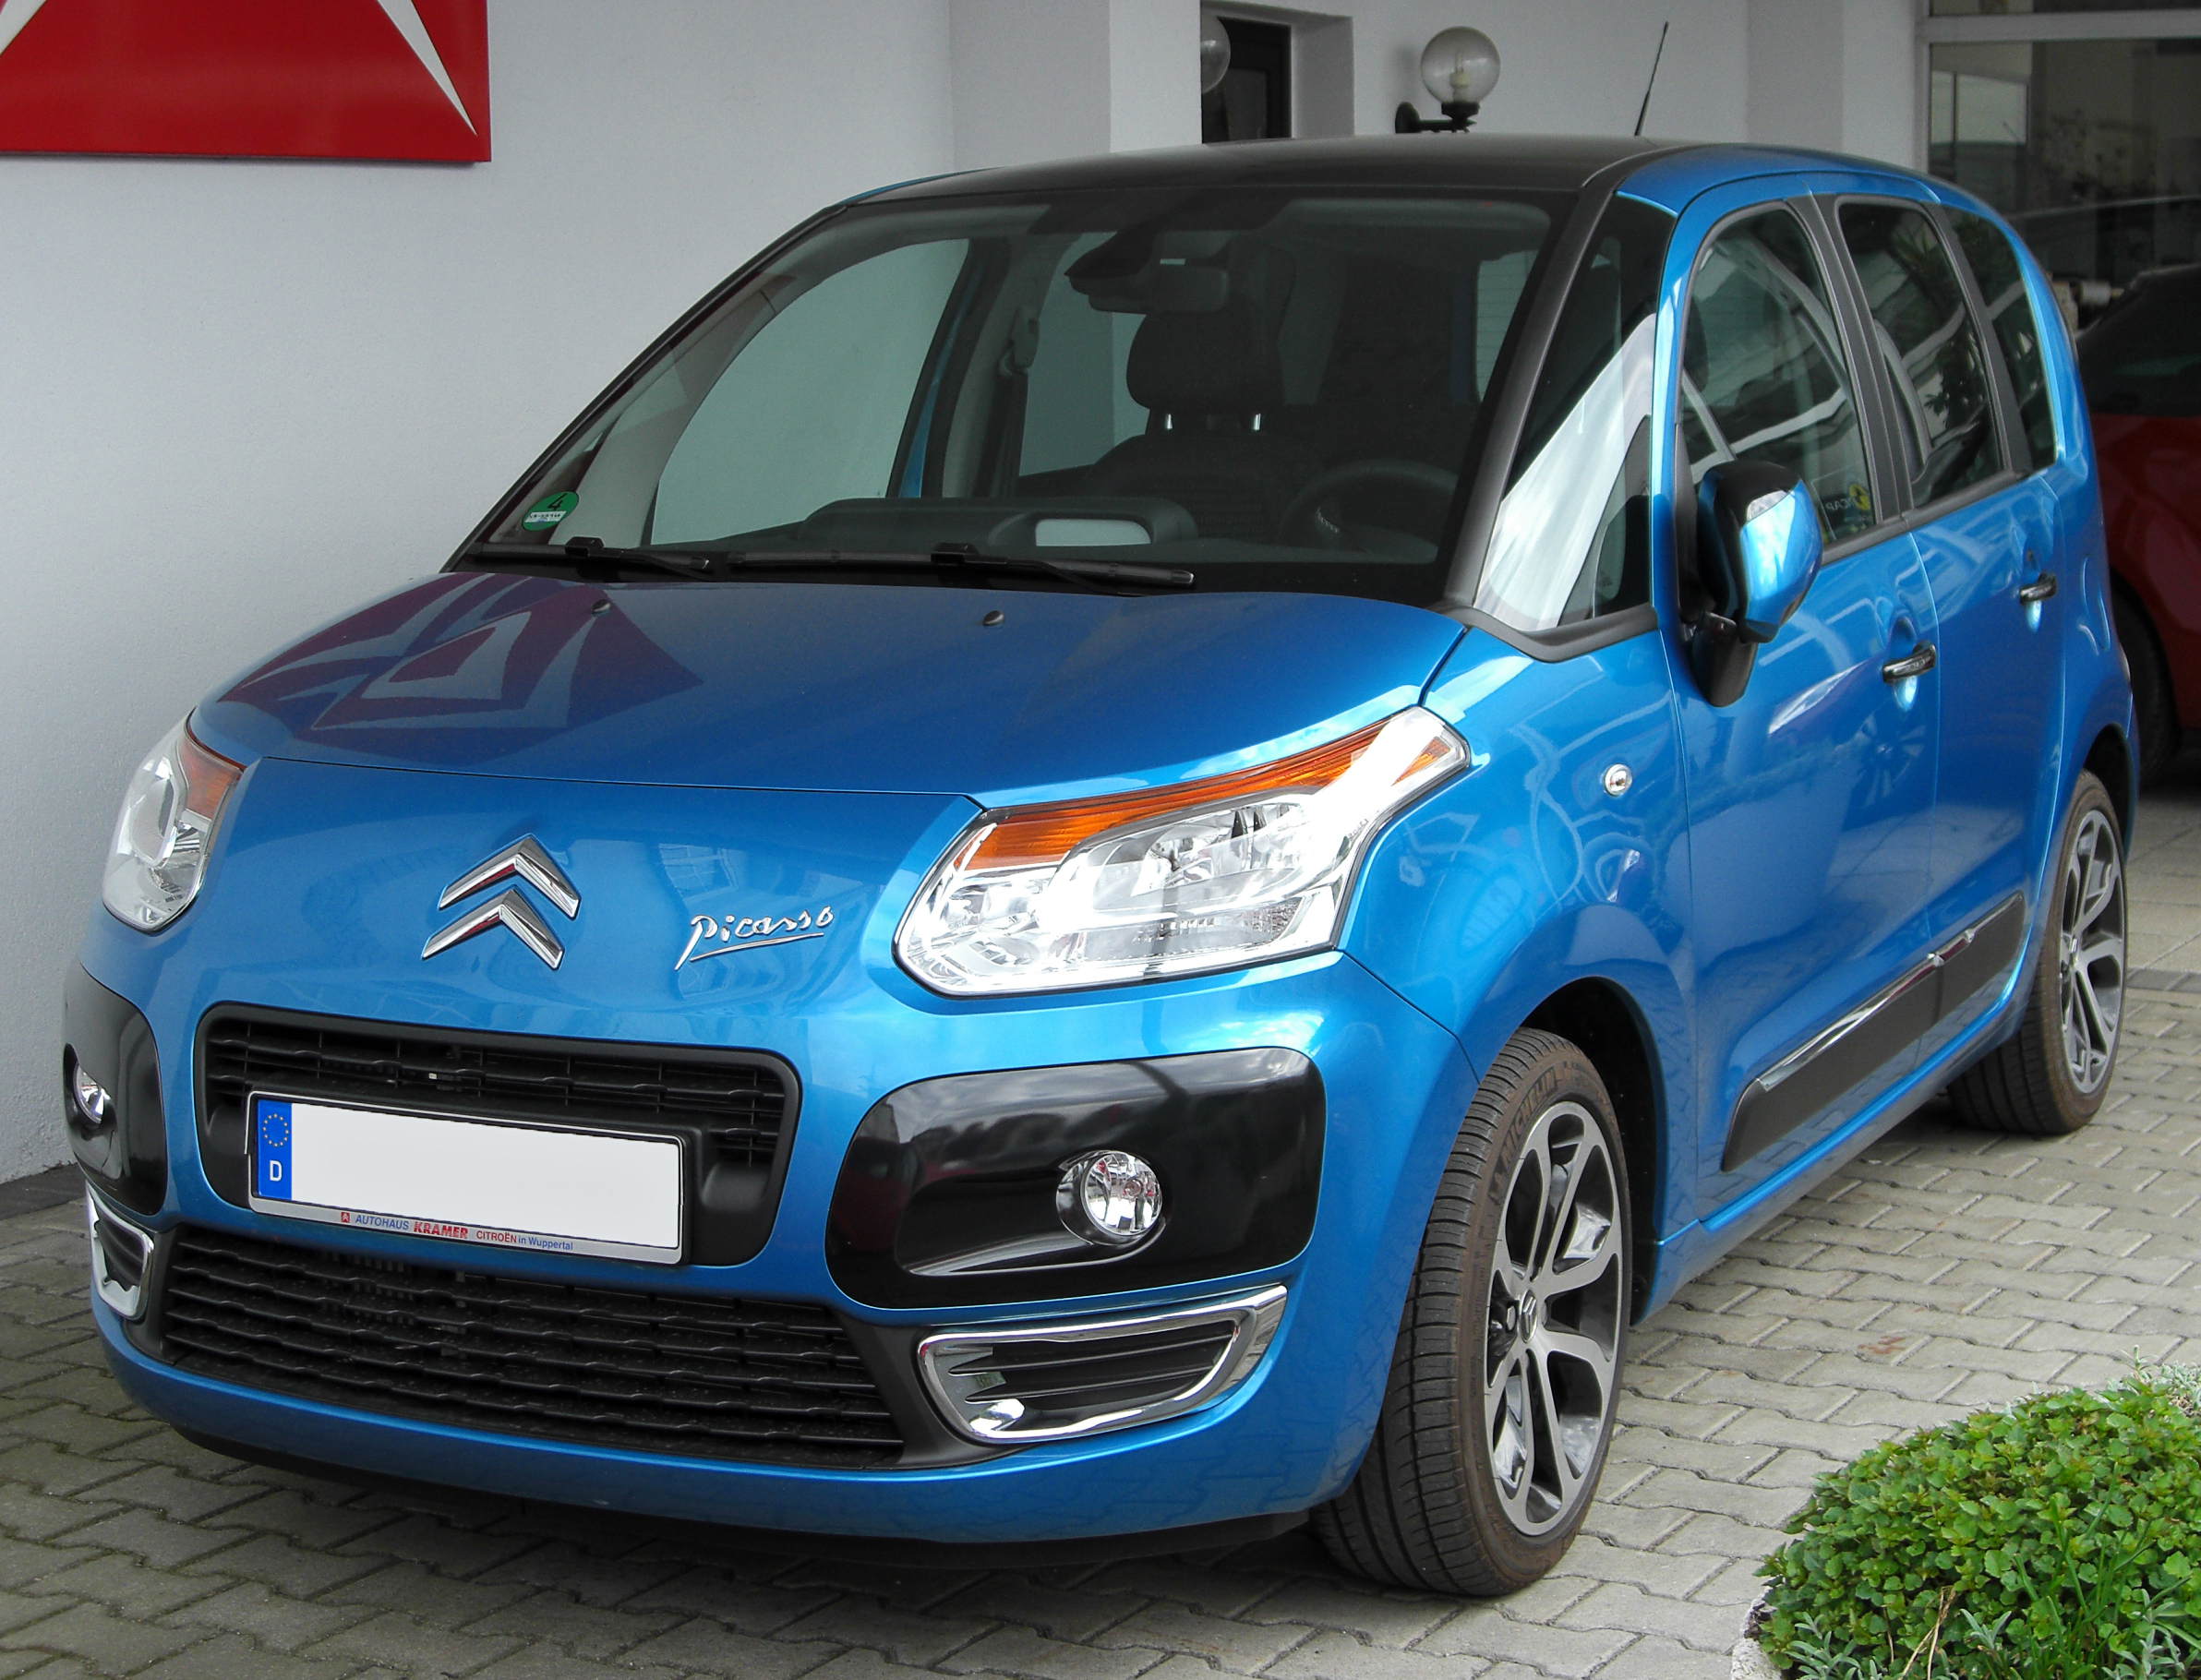 CITROEN PICASSO ~ Pictures | Cars Models 2016 | Cars 2017 ...